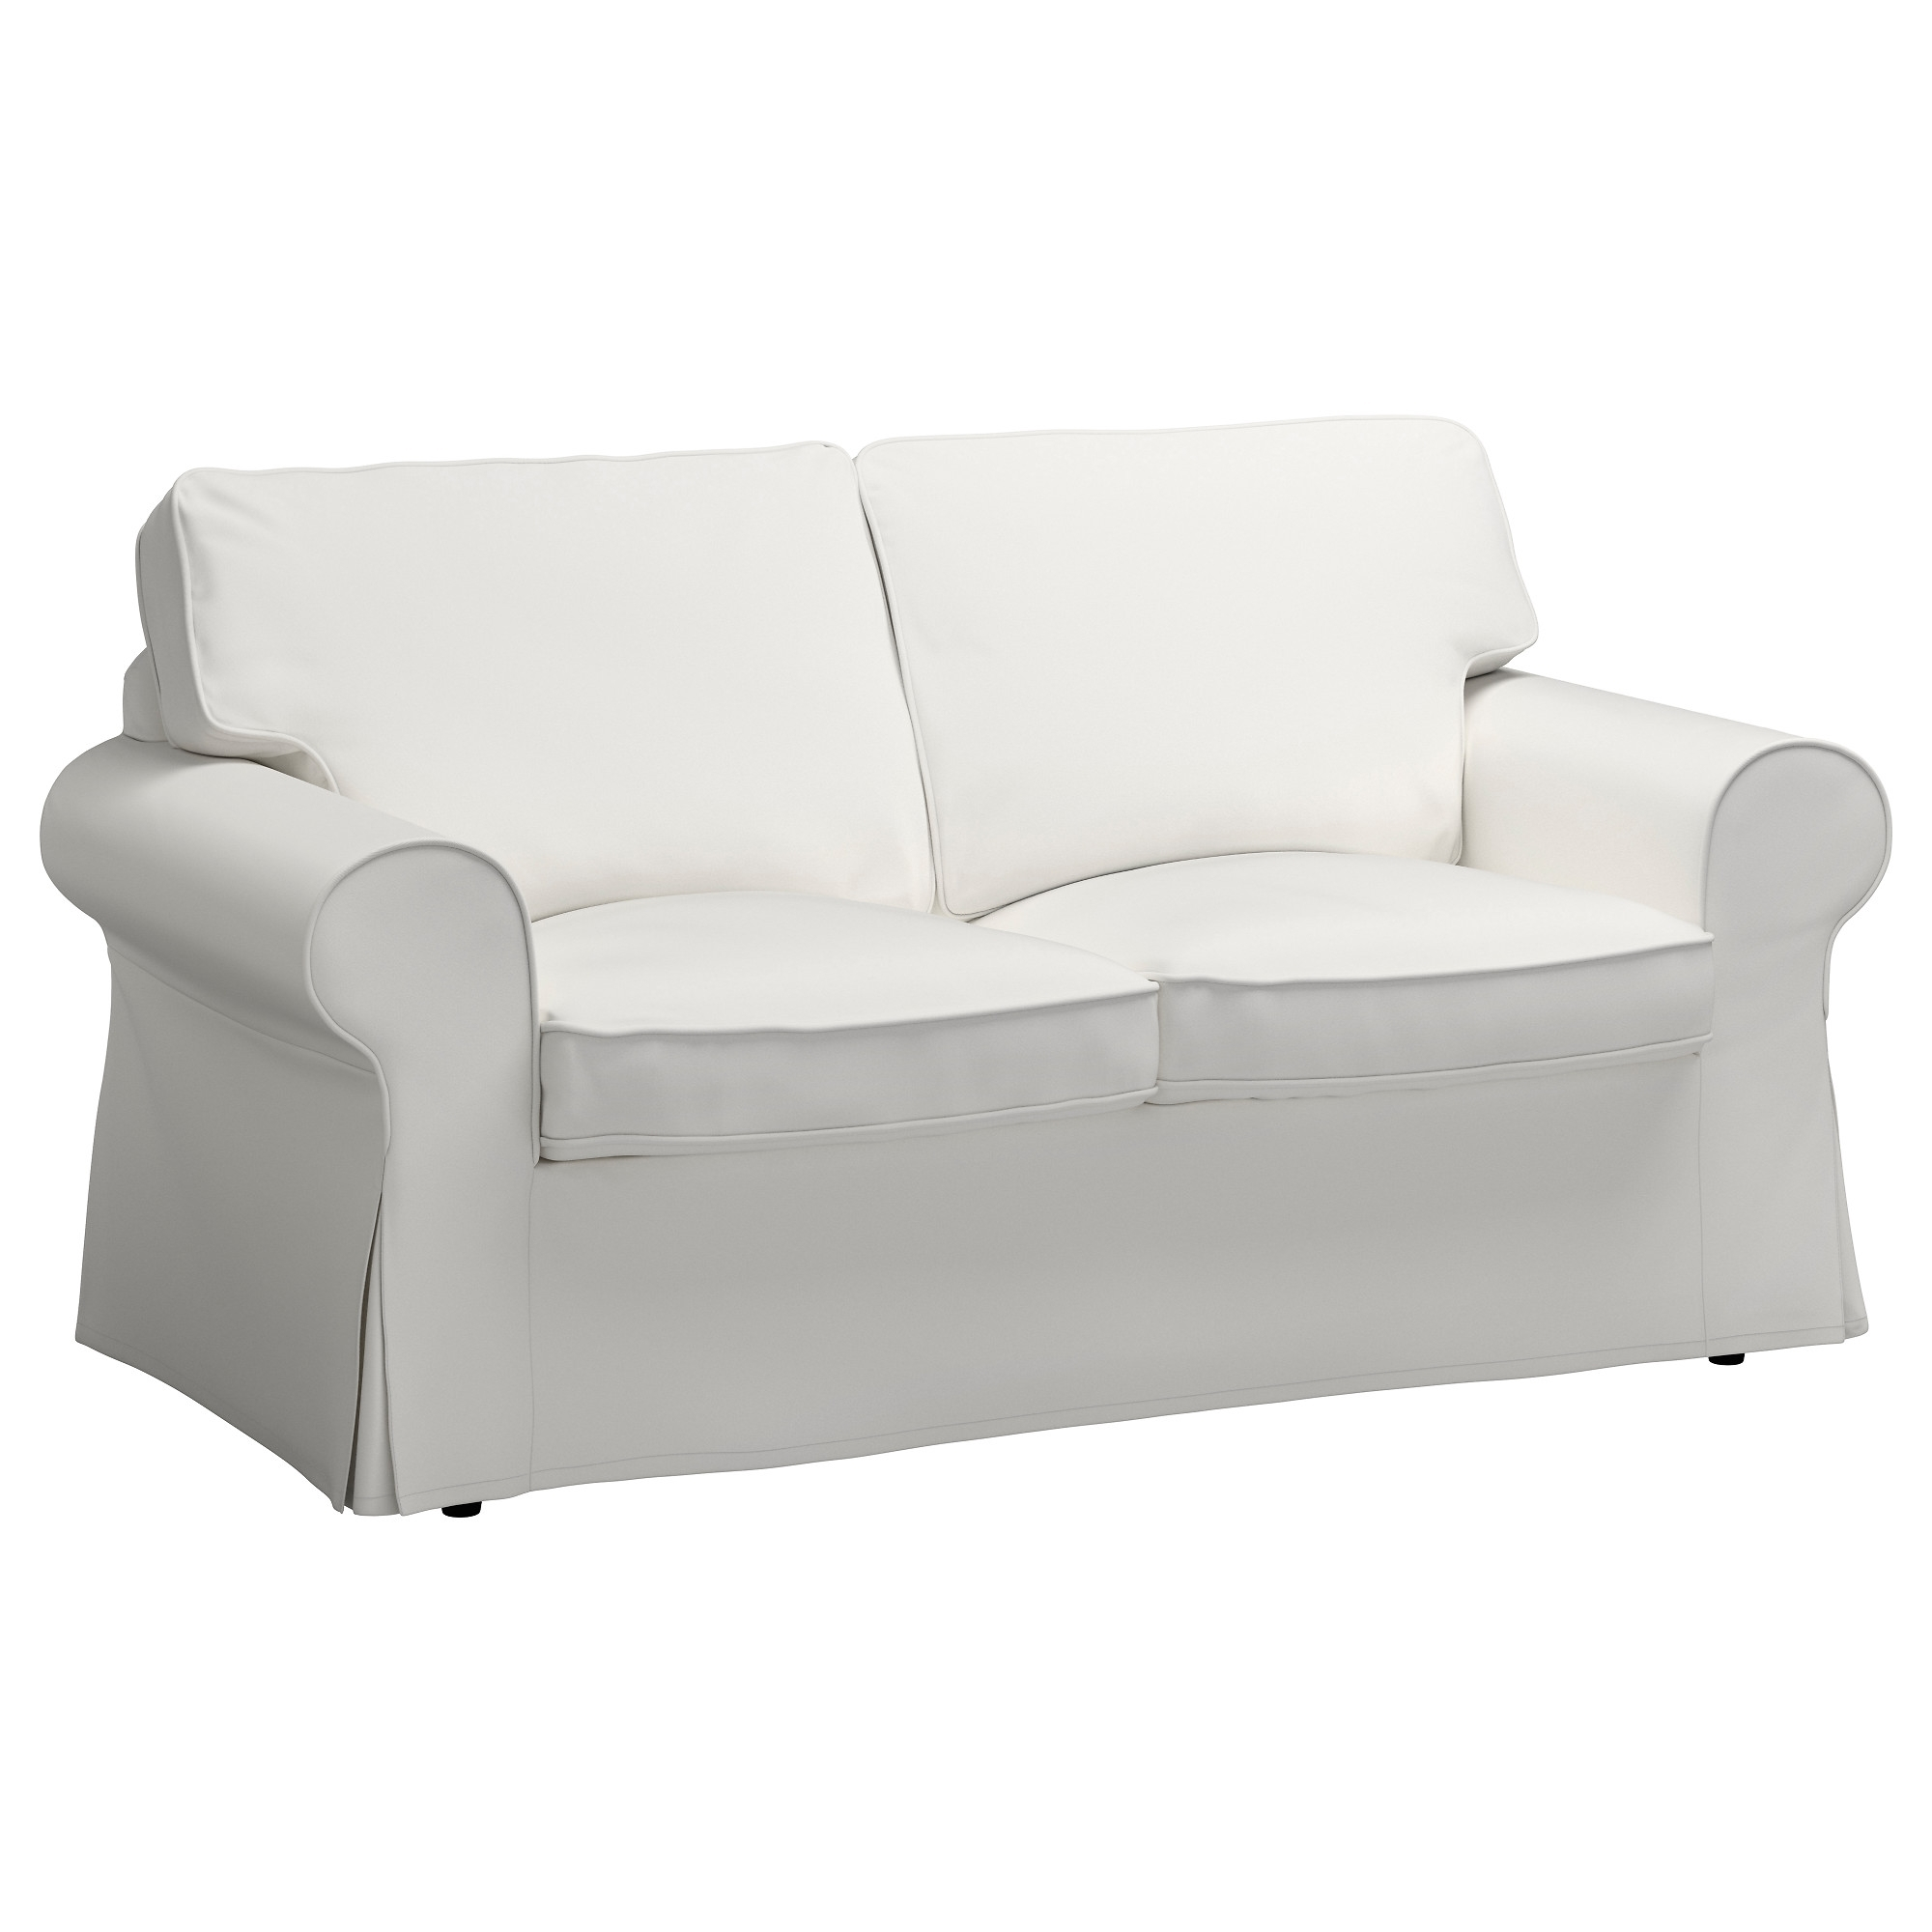 Ektorp Sofa Vittaryd White Showing Gallery Of Ikea Small Sofas View 4 Of 20 Photos